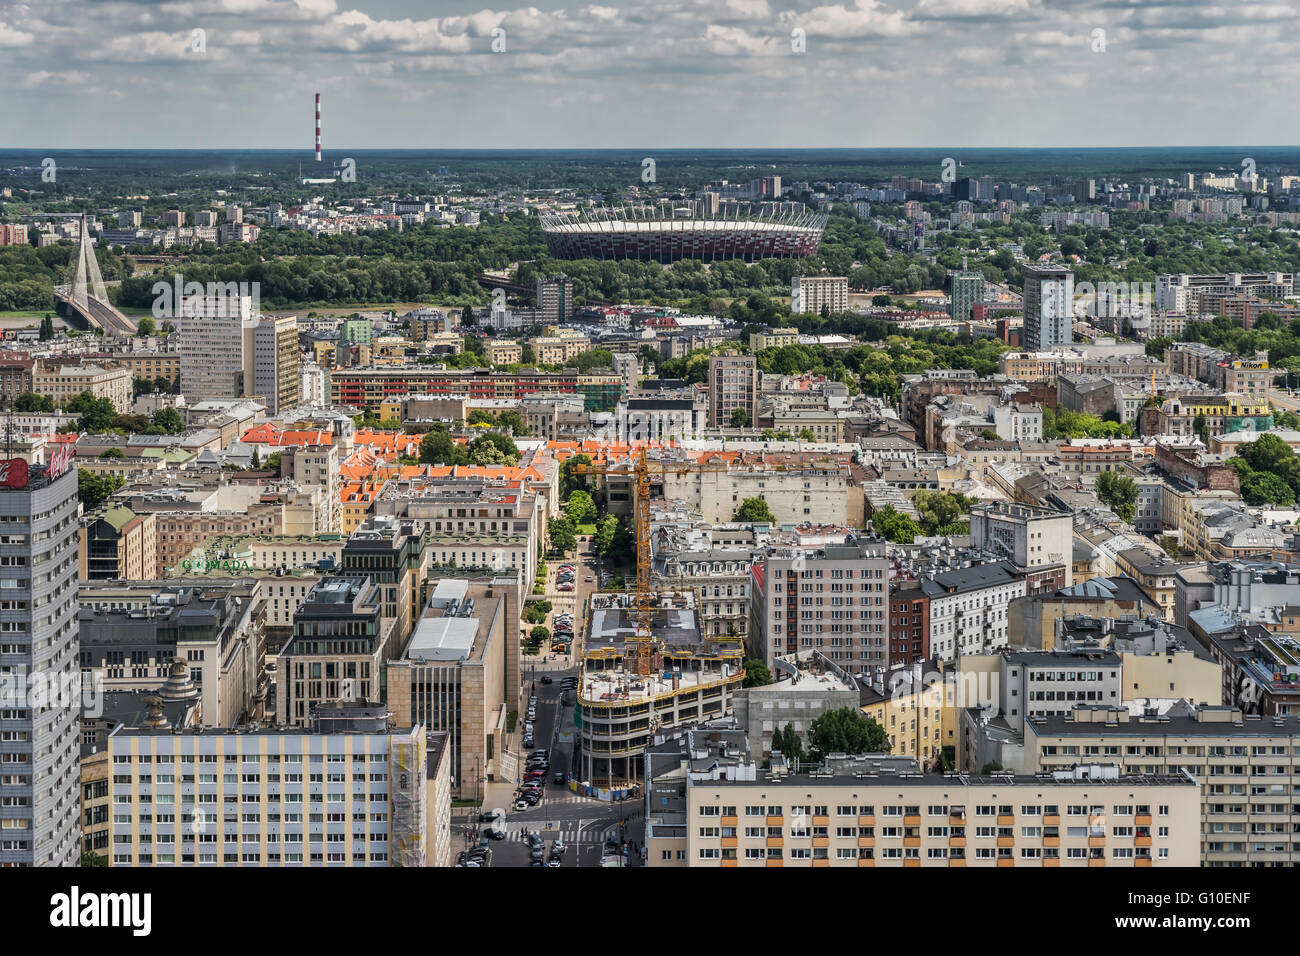 View from the Palace of Culture and Science over Warsaw and to the national stadium, Warsaw, Masovian, Poland, Europe - Stock Image